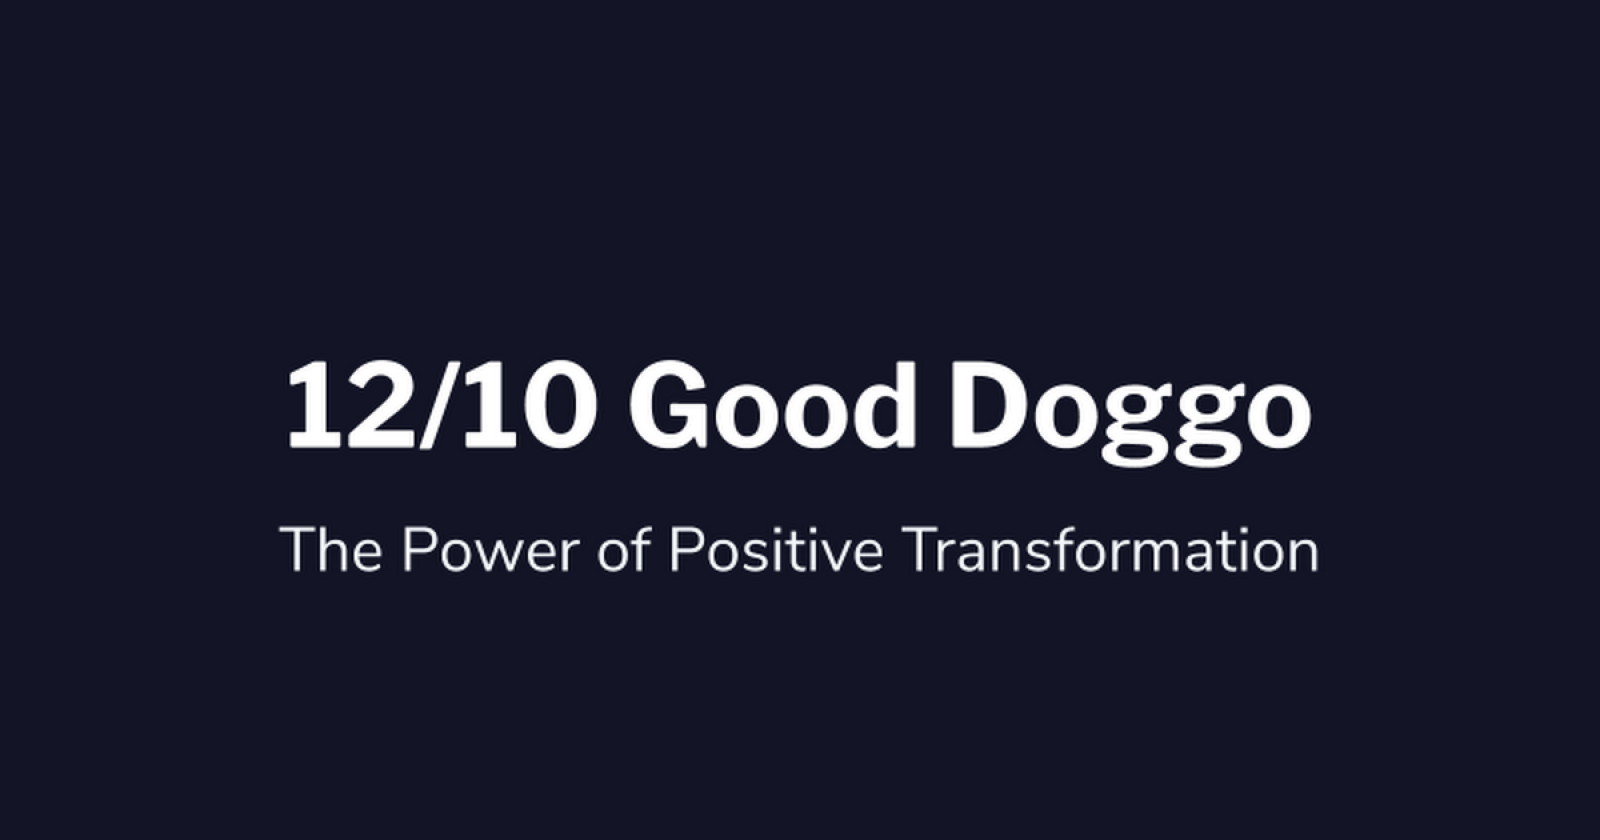 12/10 Good Doggo: The Power of Positive Transformation